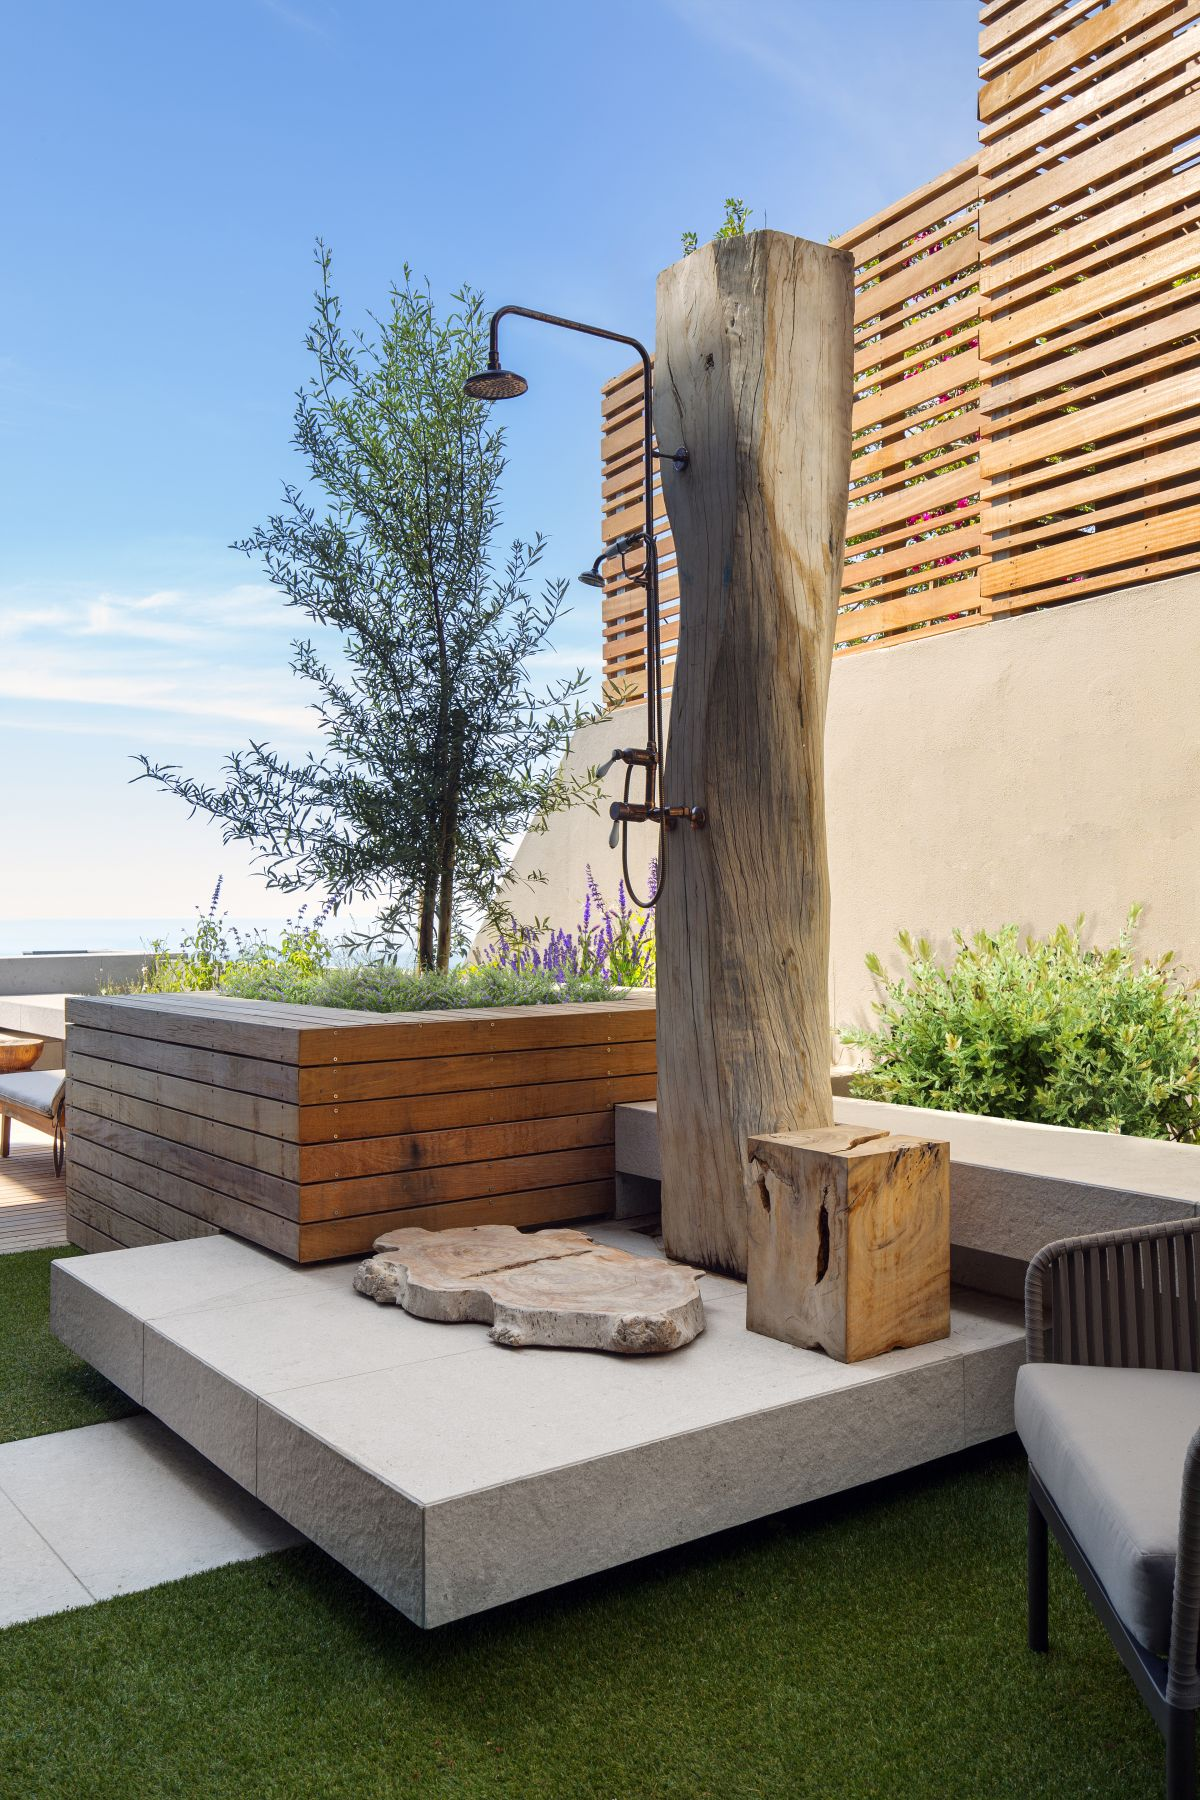 The outdoor is genius. The tree trunk is a really nice feature, in tone with the zen aesthetic